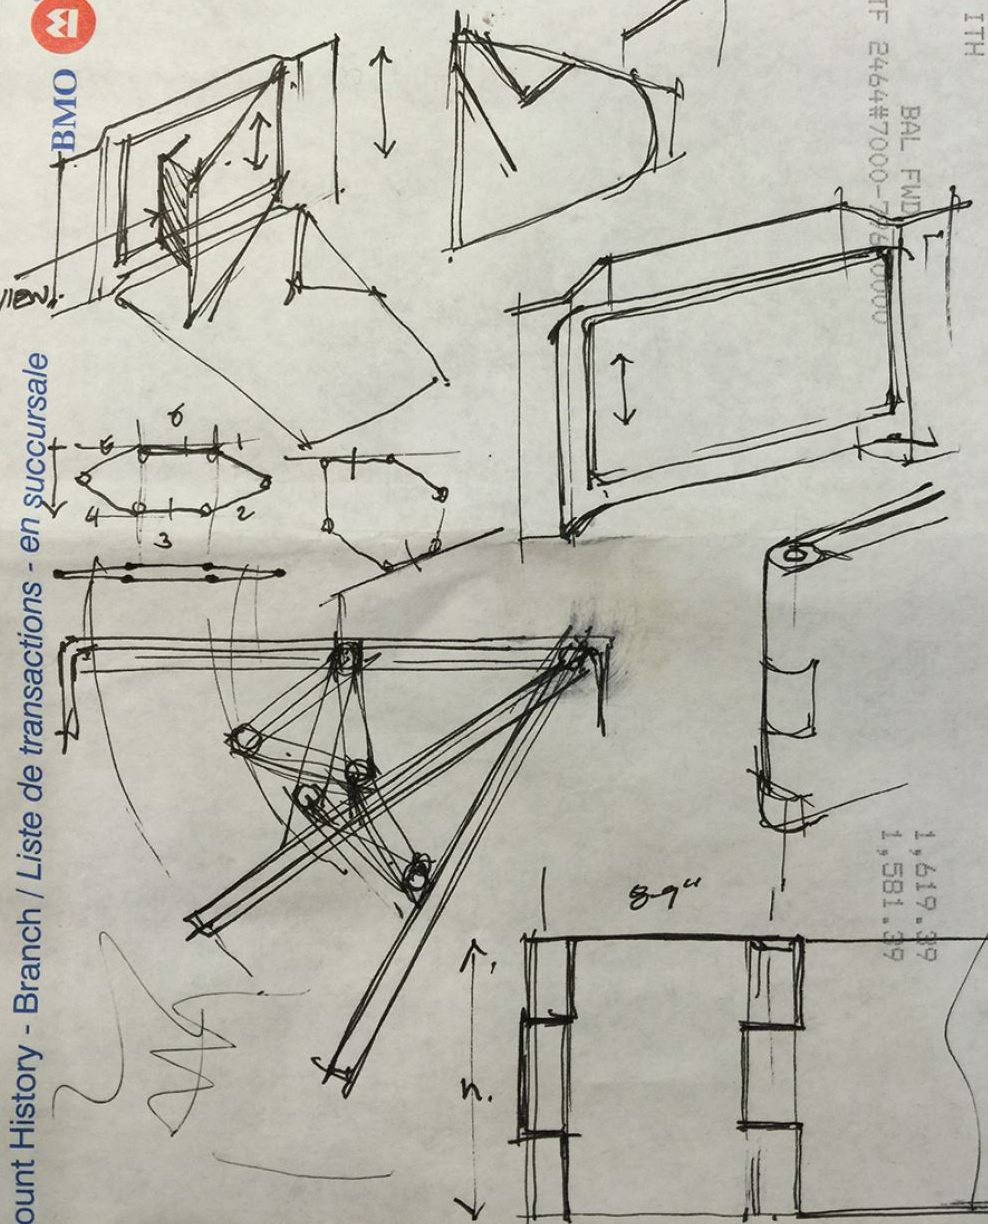 Understanding the required geometry to articulate a large monitor.